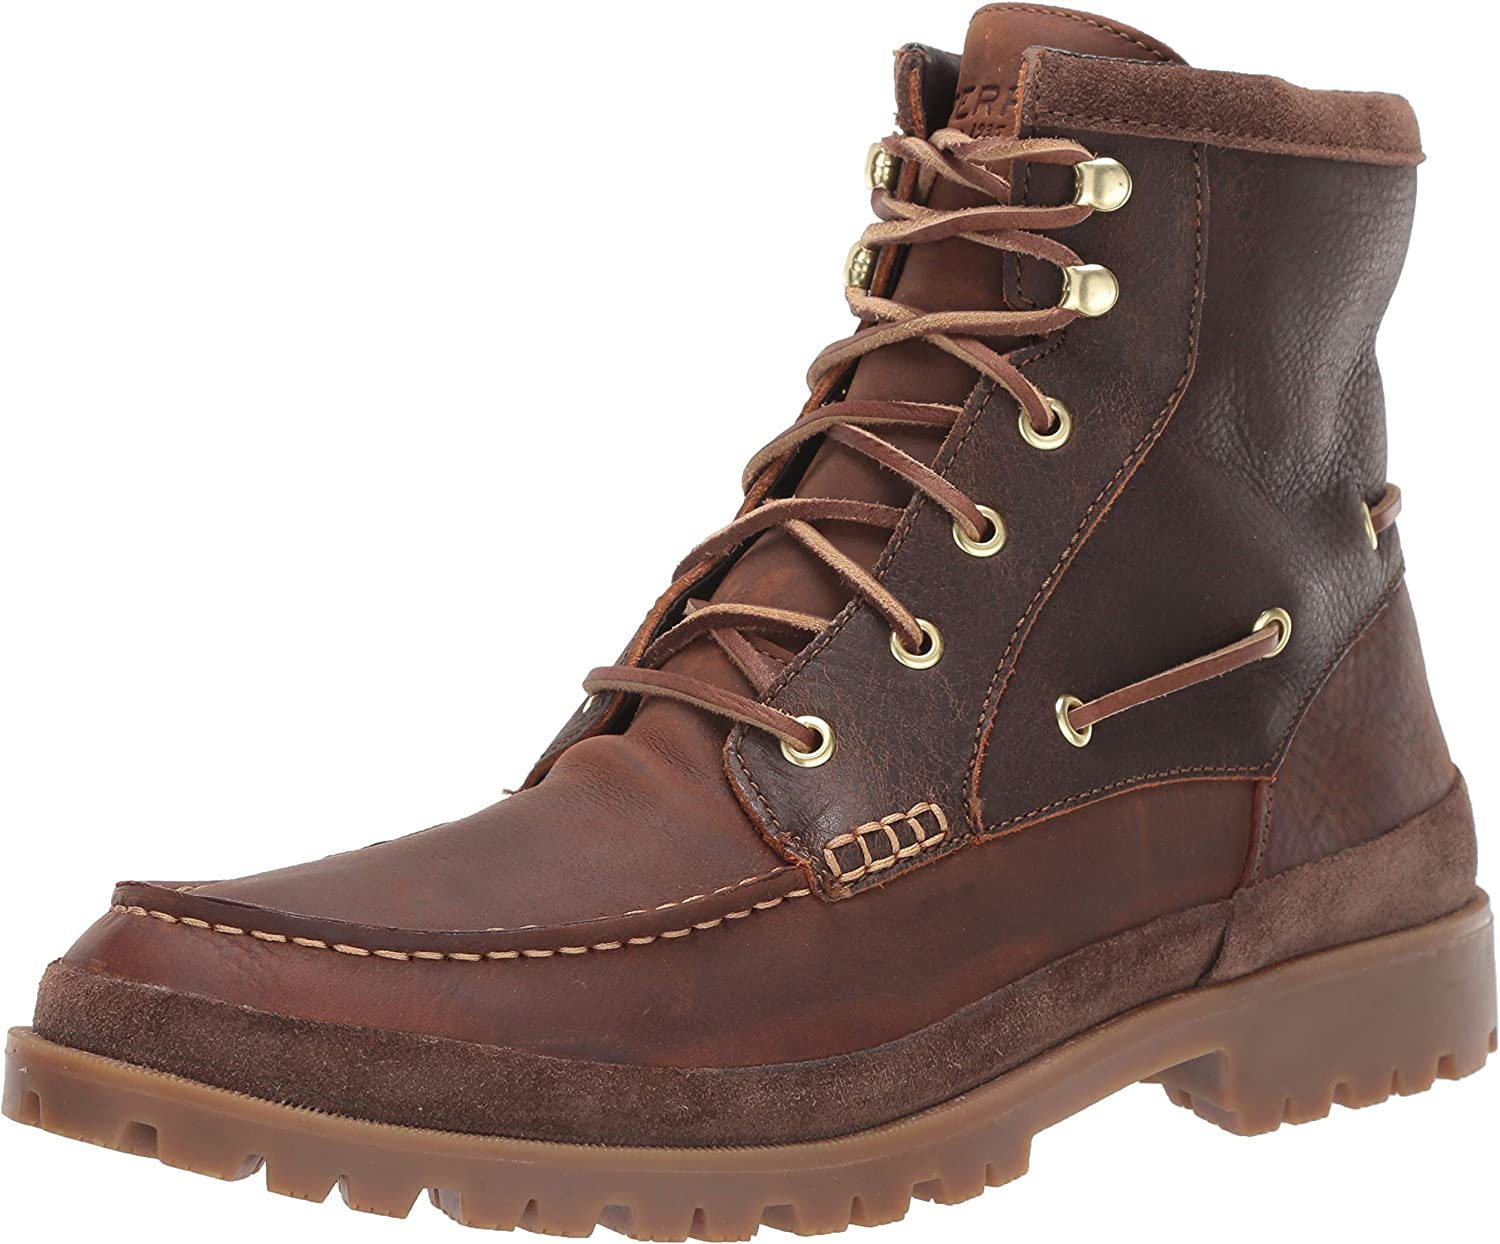 Sperry Top-Sider Men's A/O Lug Boot